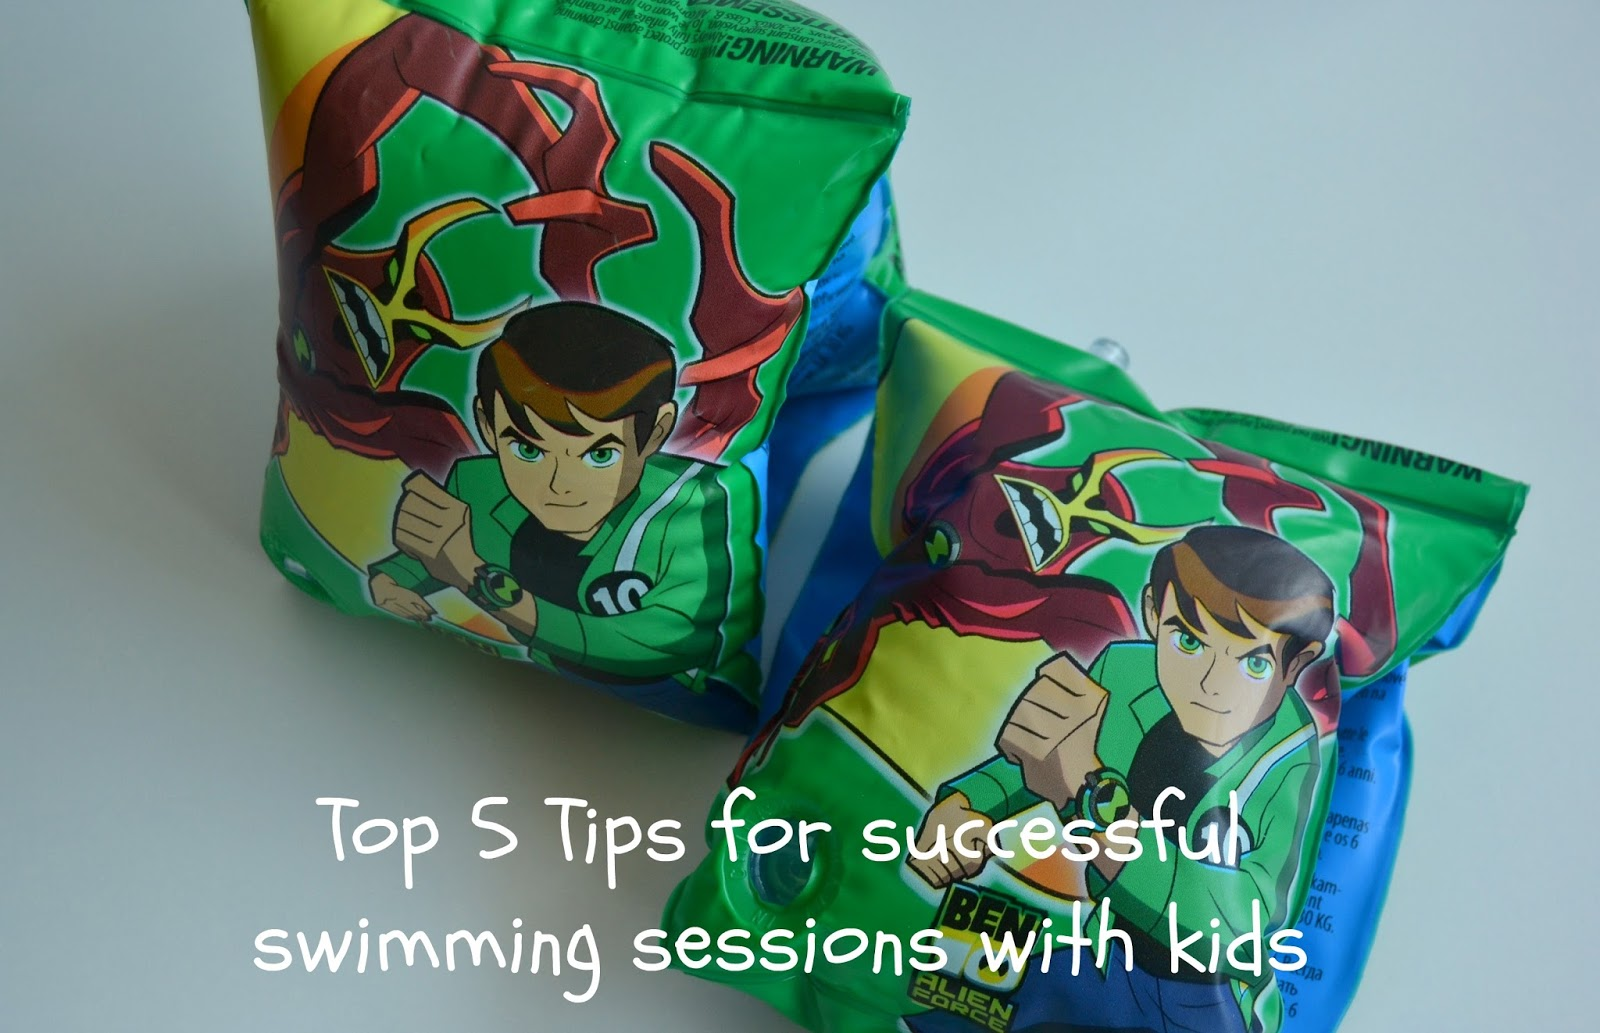 Top 5 tips for sucessful swimming sessions with kids